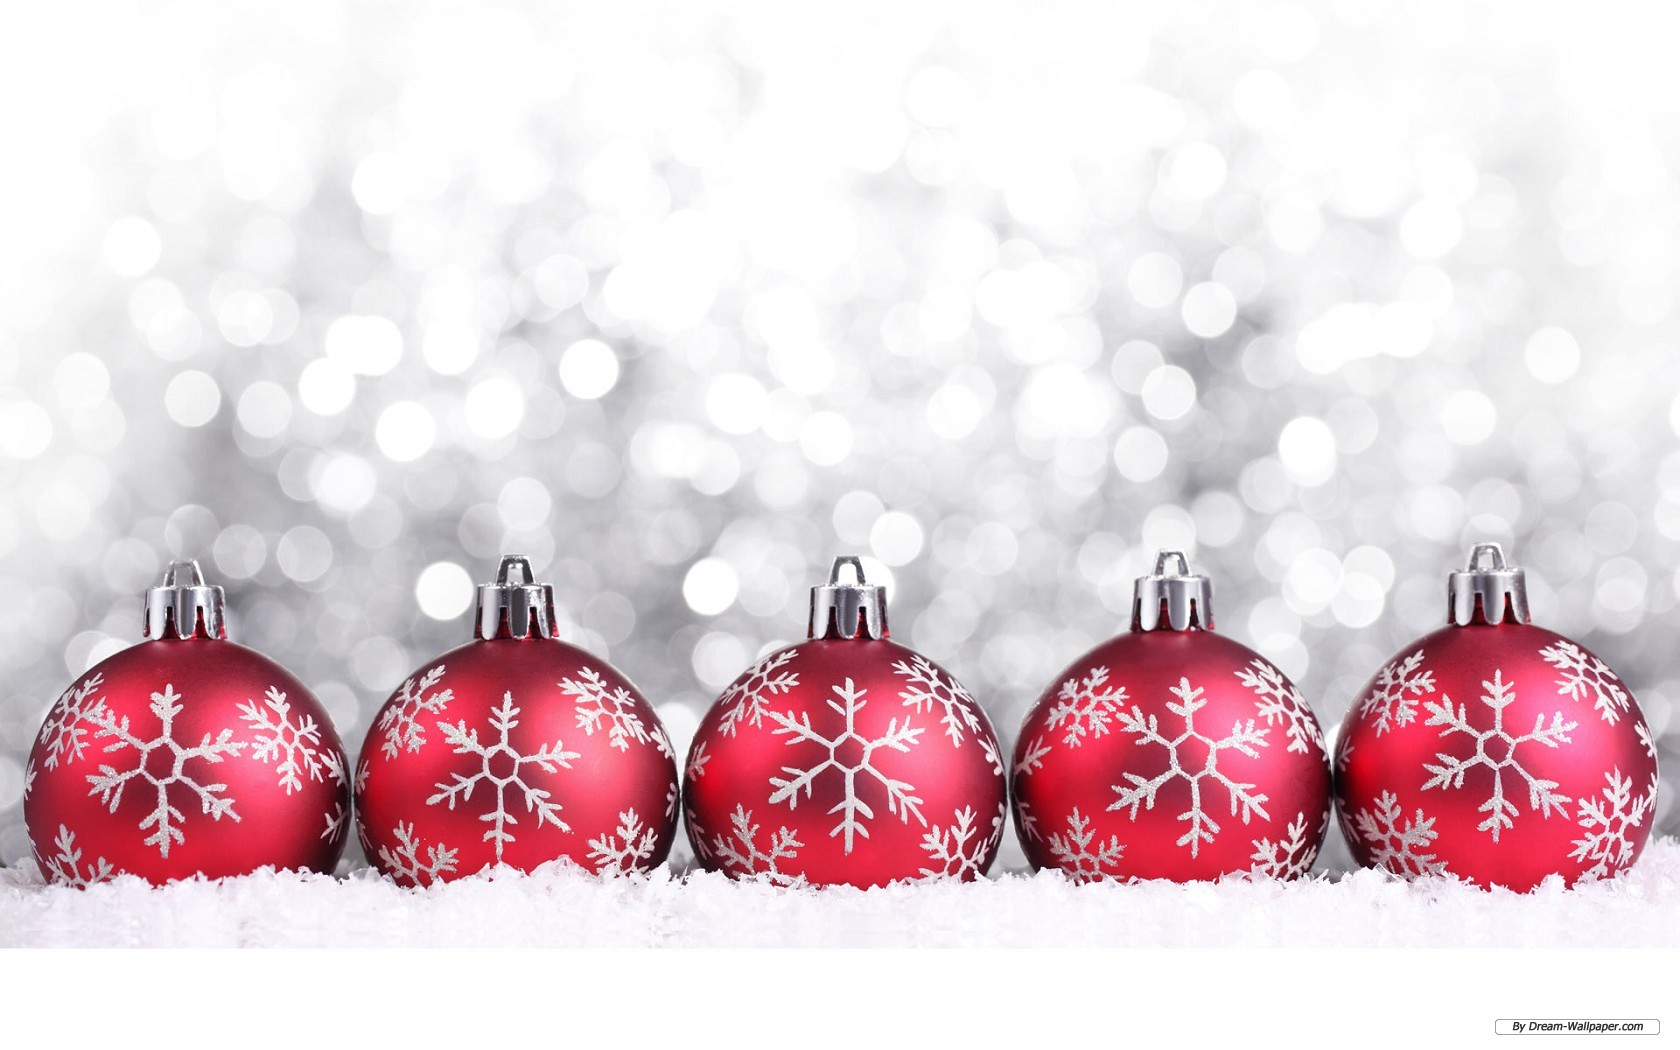 Free Christmas Ornaments Wallpaper 38737 1920x1200 px